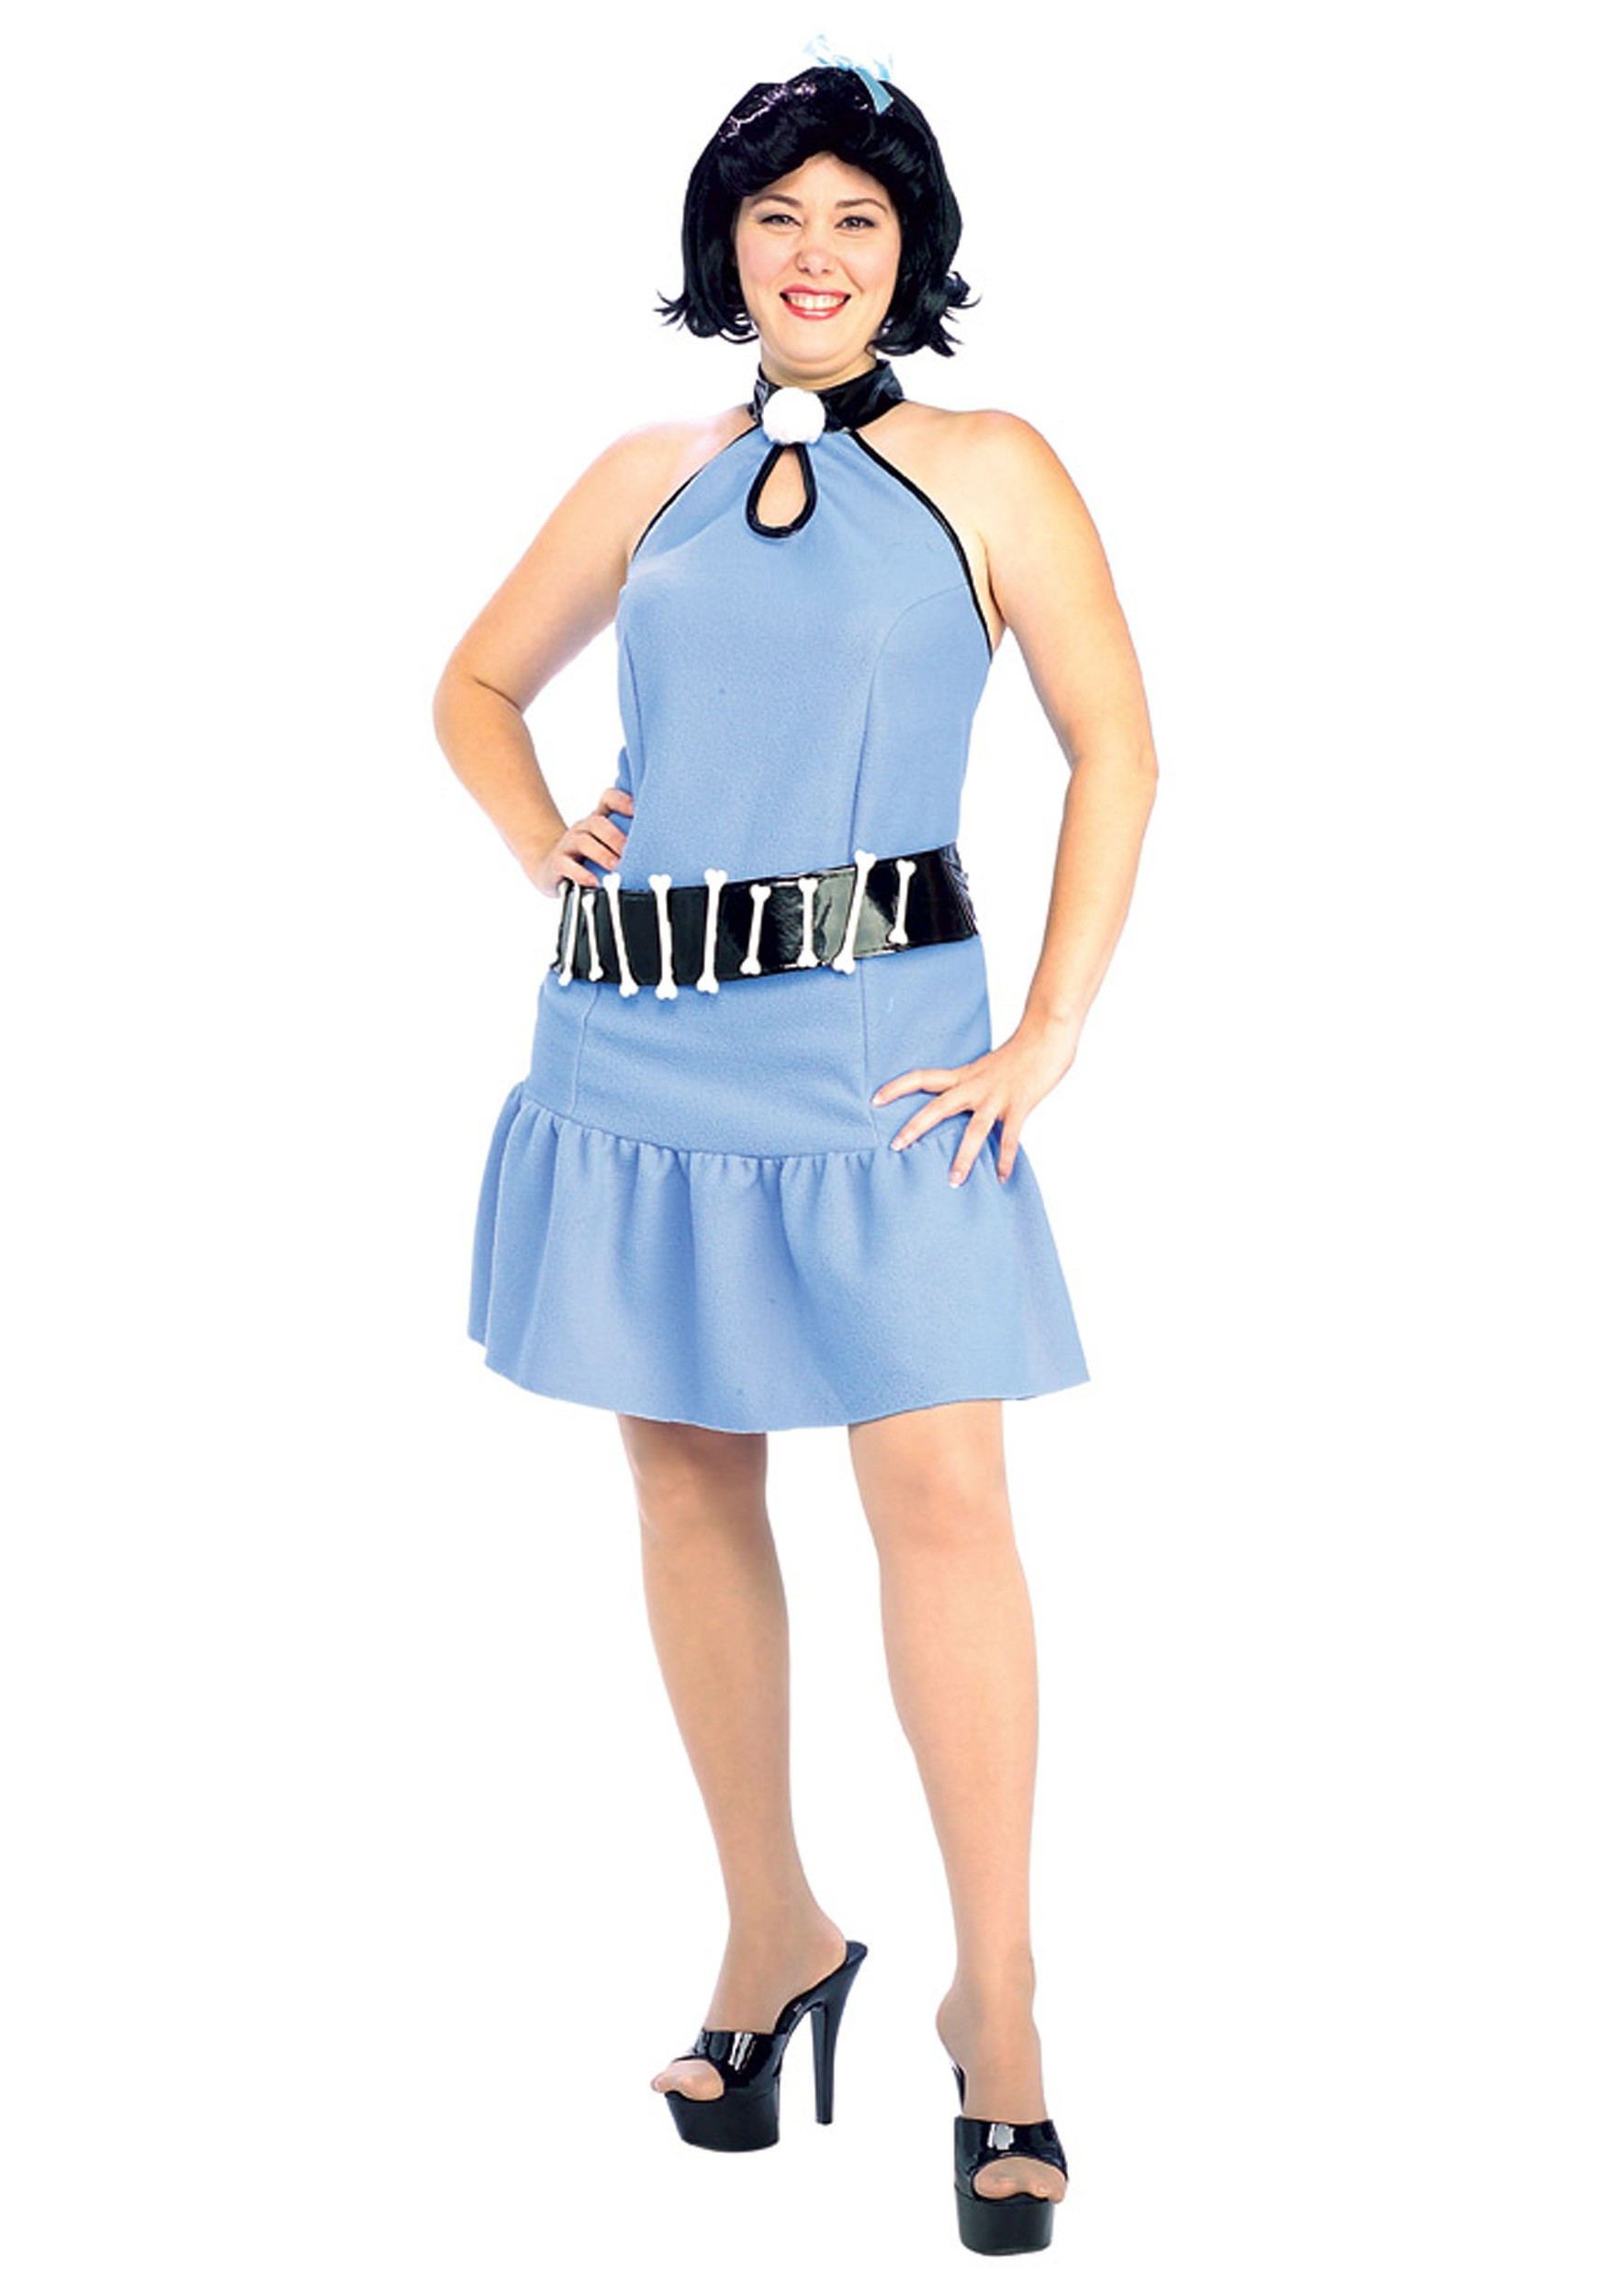 Best ideas about Betty Rubble Costume DIY . Save or Pin Plus Size Betty Rubble Costume Now.